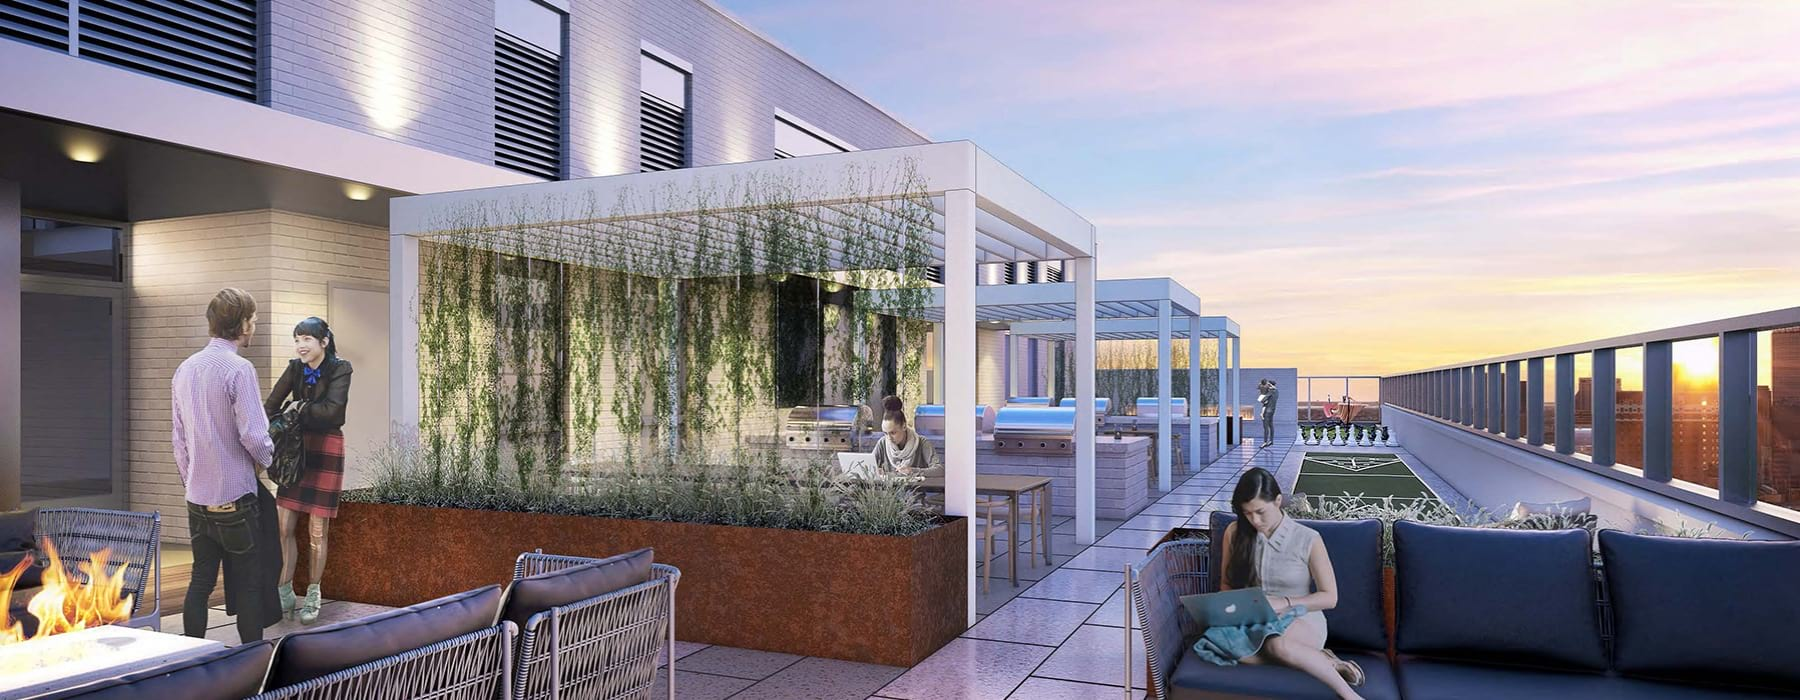 Rooftop Pool And Community Lounge Space At J Sol Apartments In Arlington, VA